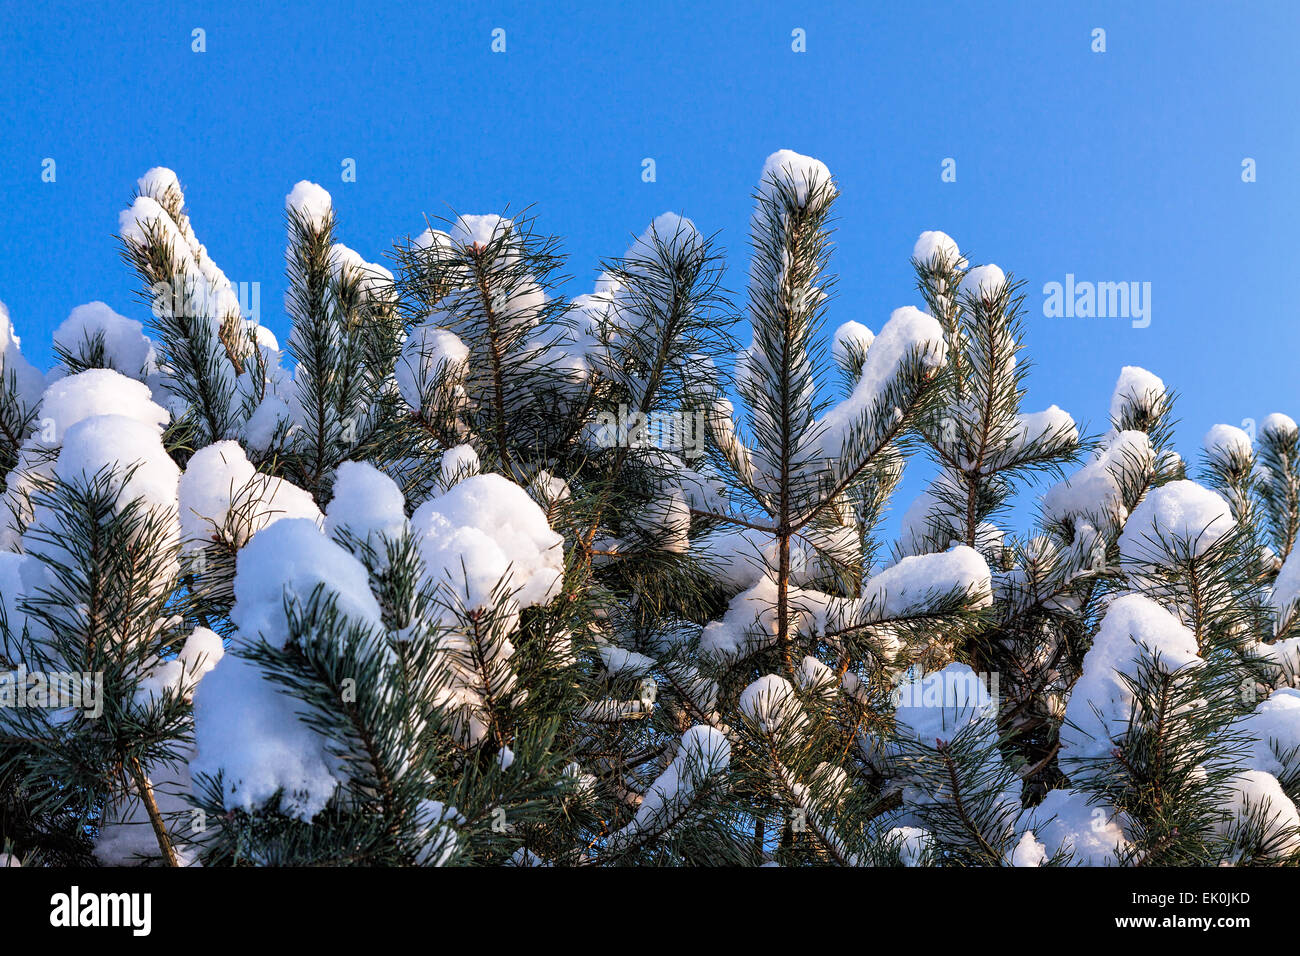 Conifer in winter with snow and blue sky - Stock Image